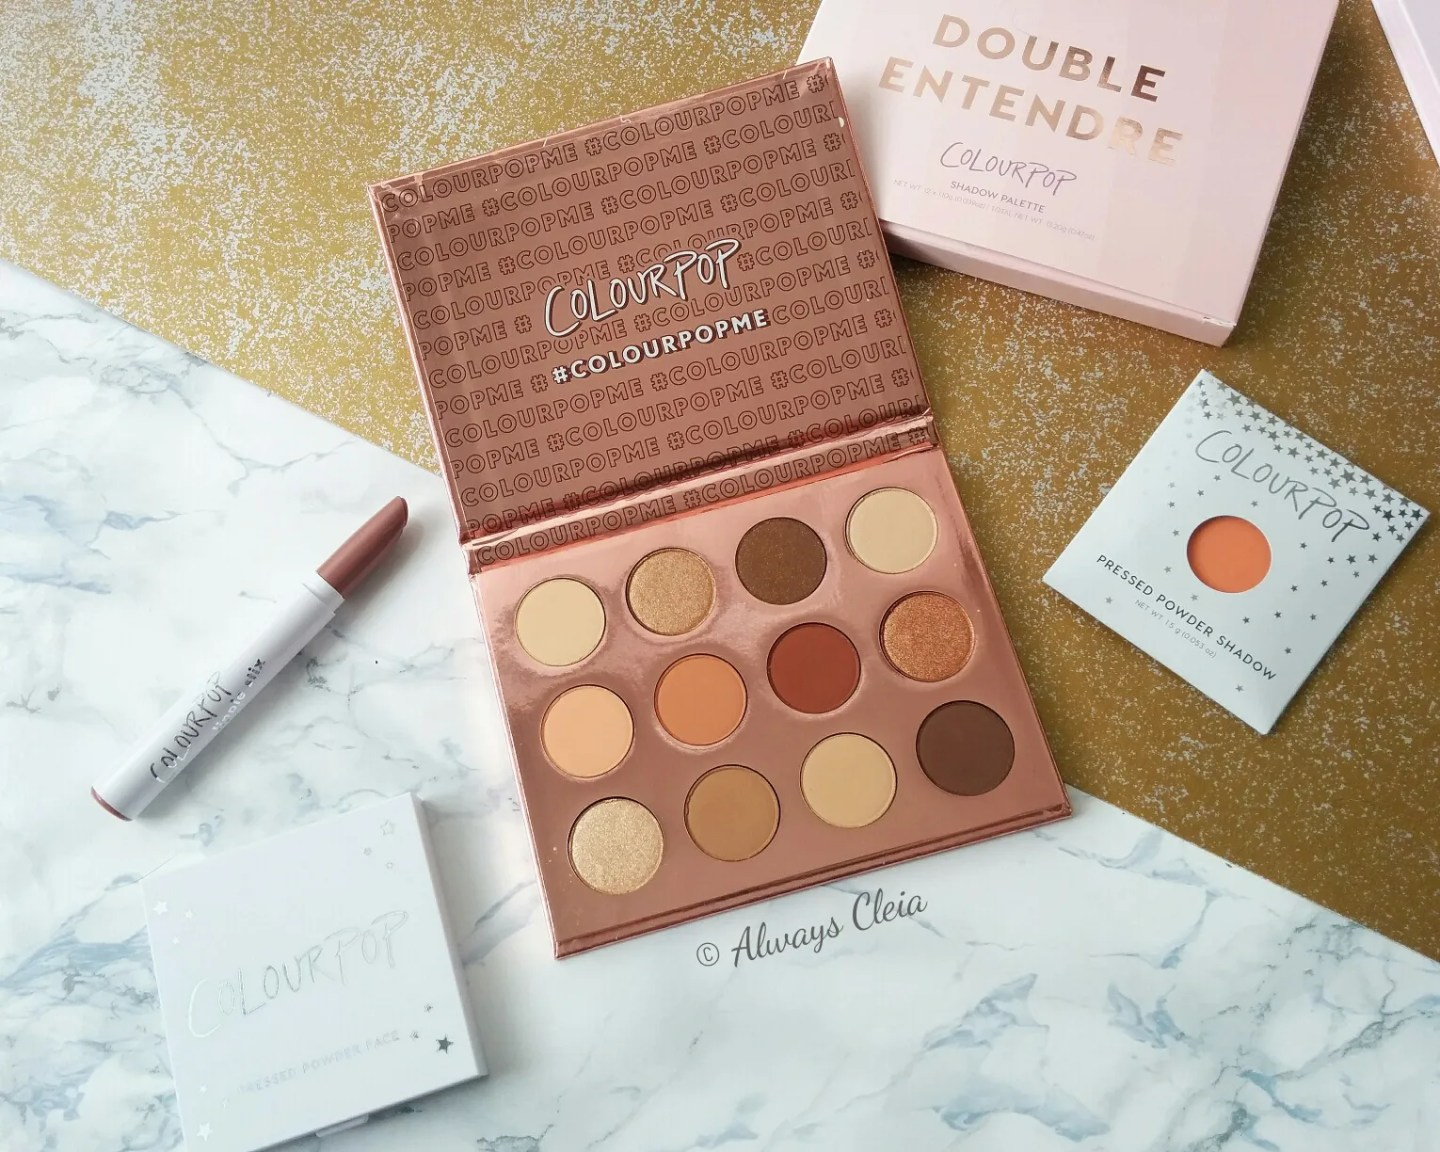 ColourPop Haul #3 - Double Entendre Palette